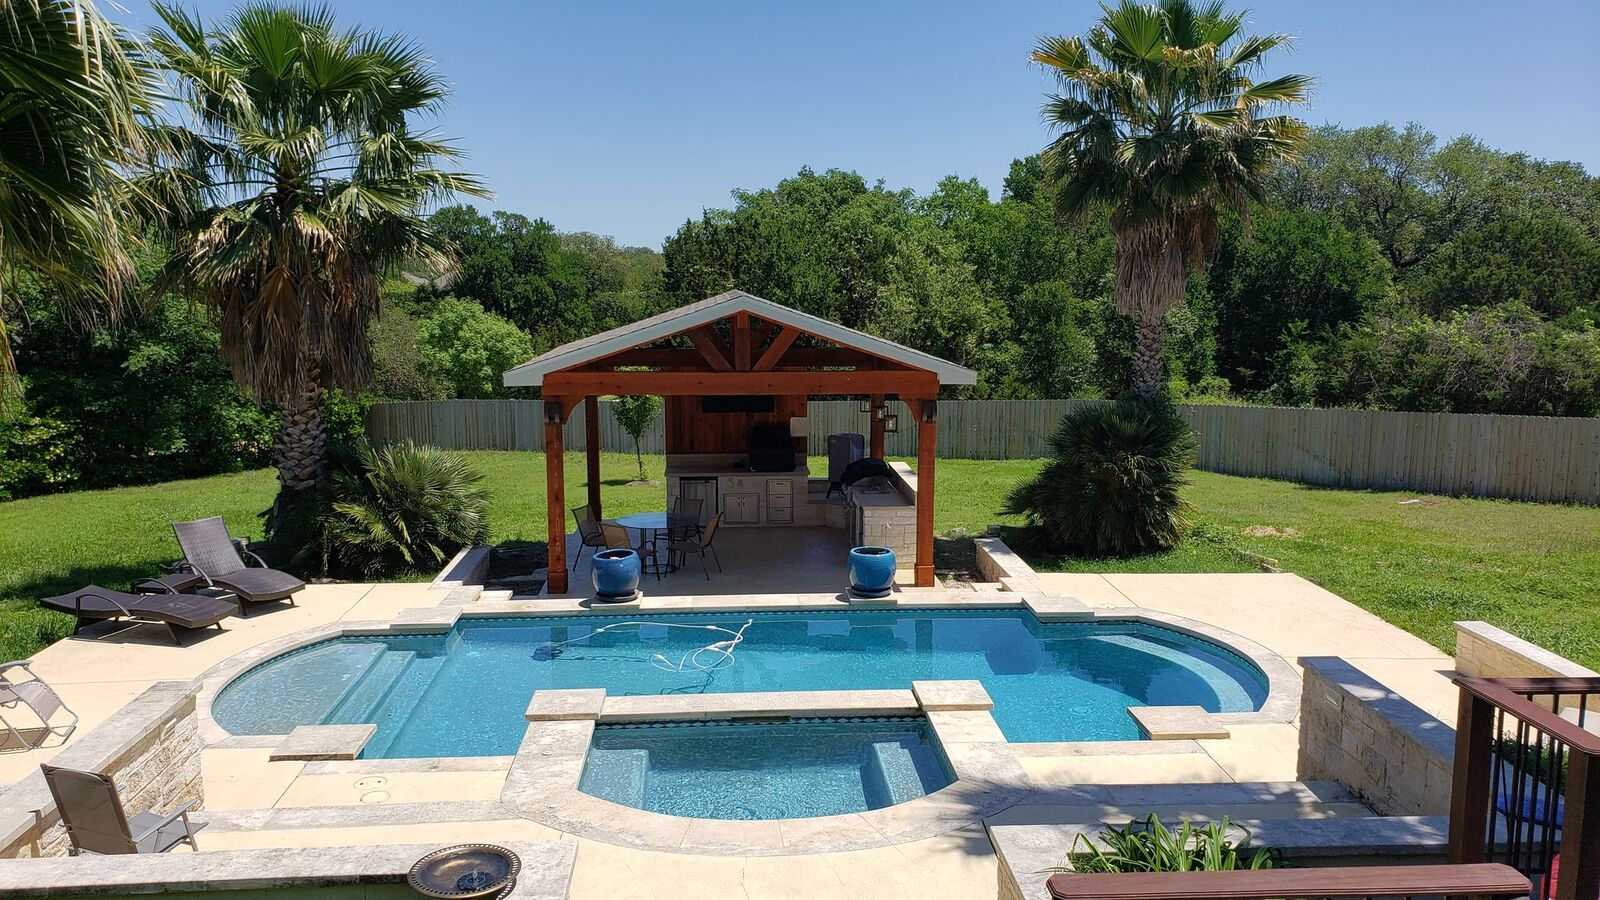 The-new-cabana-completes-this-backyard-oasis